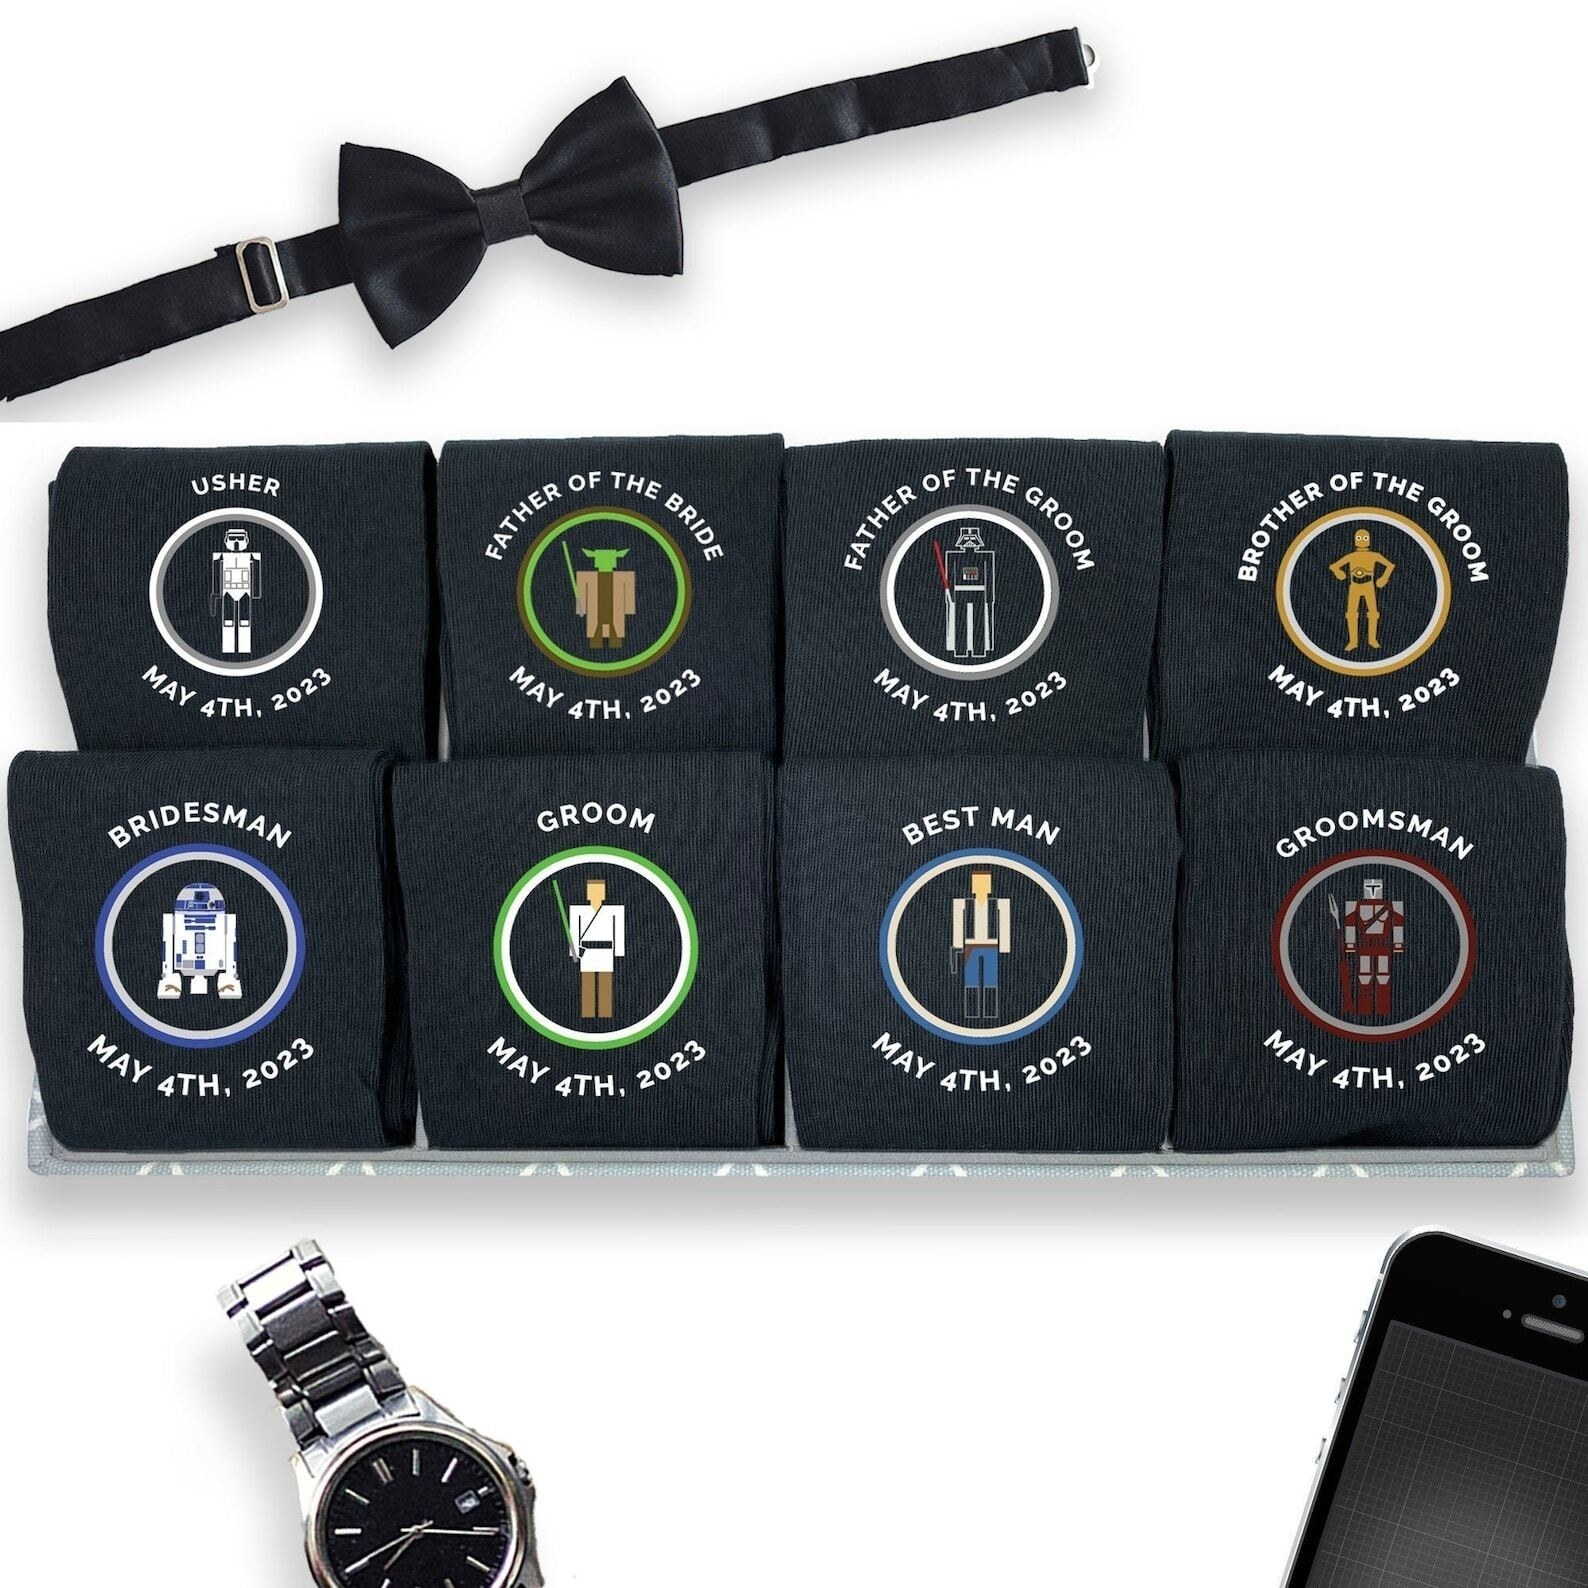 several pairs of socks with different star wars character illustrations, a wedding date, and the role of the wedding participant printed on the sides